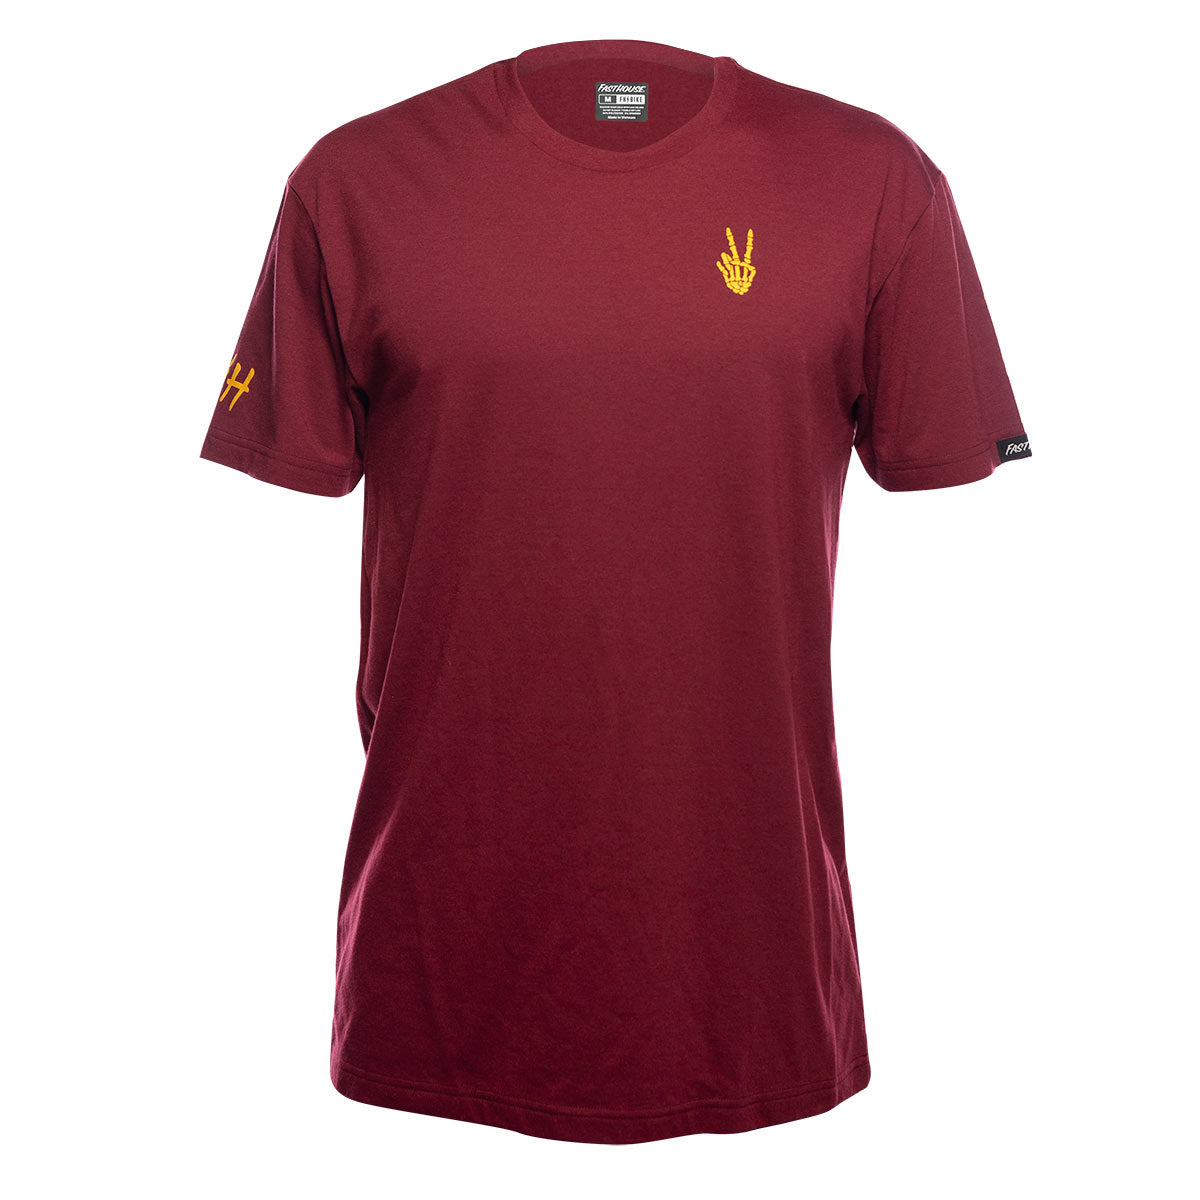 Roots Tech Tee - Maroon